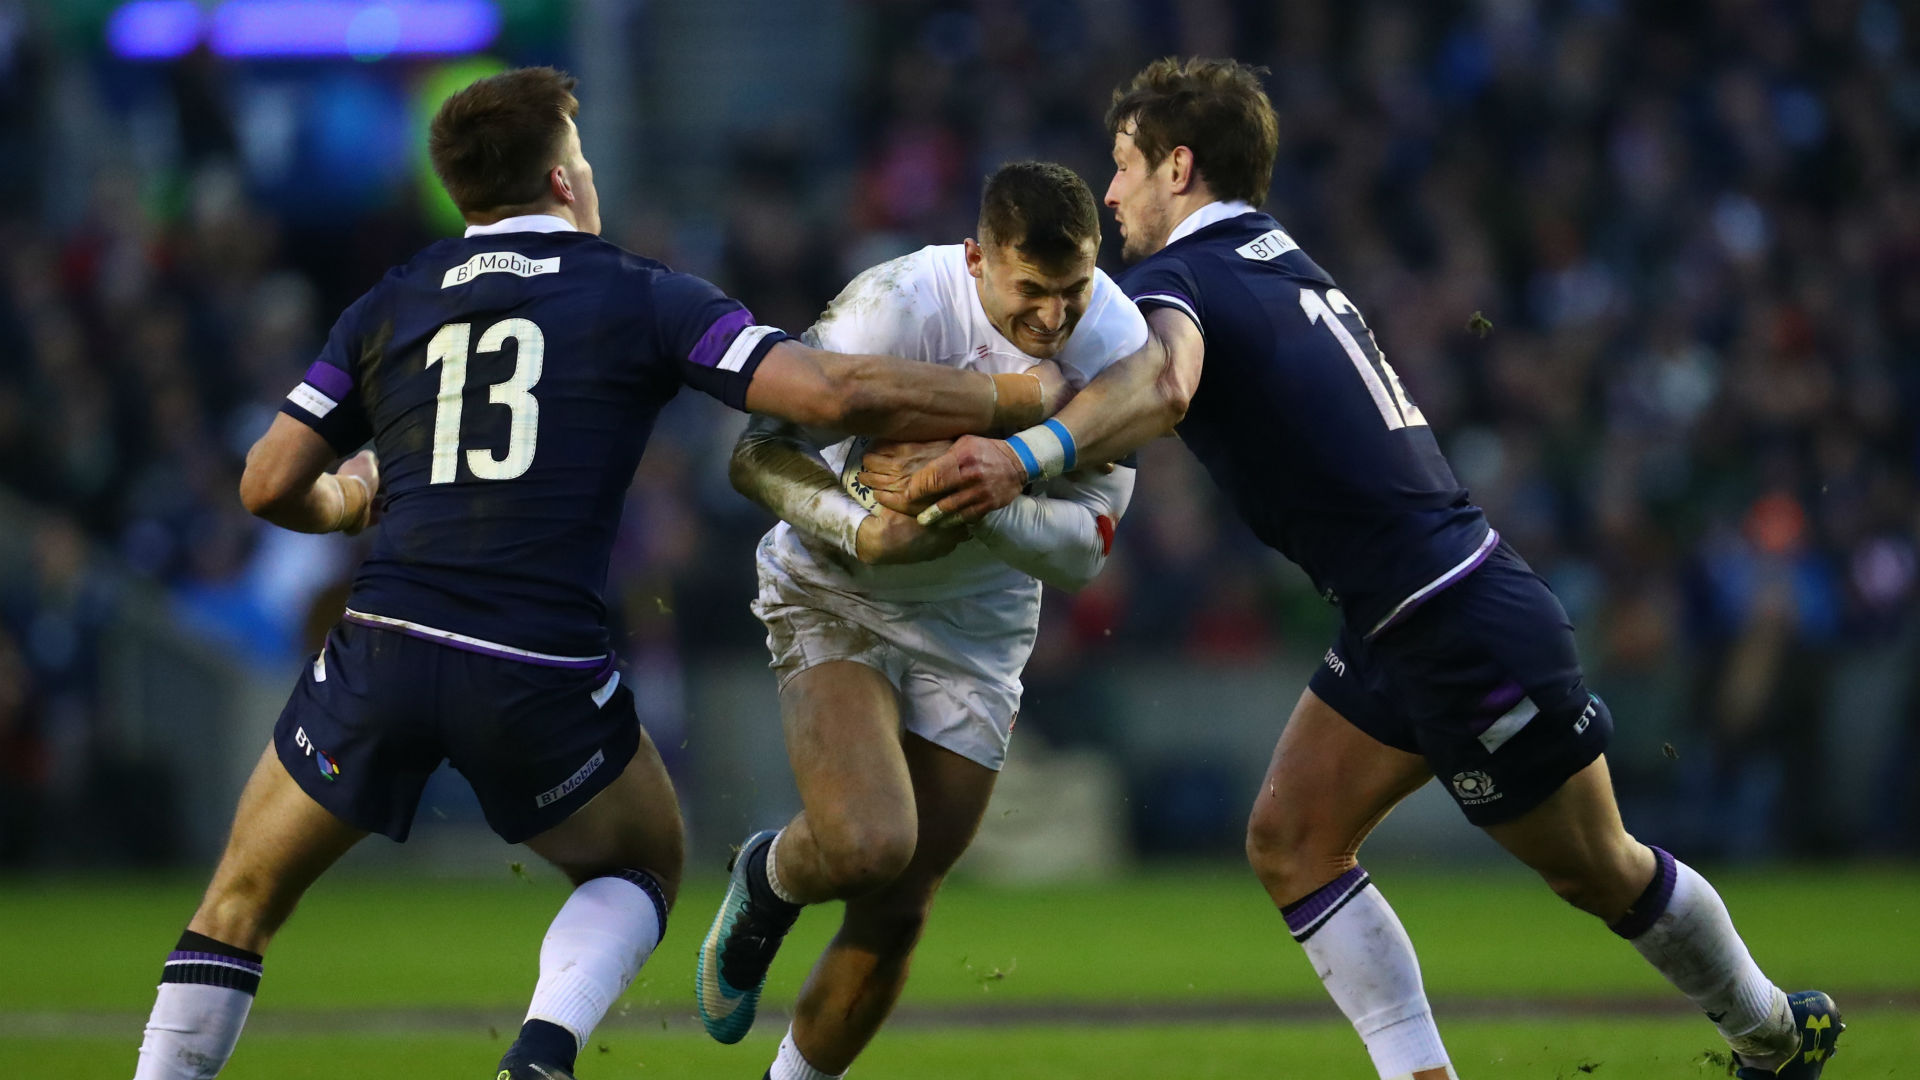 France beat England 22-16 in Six Nations